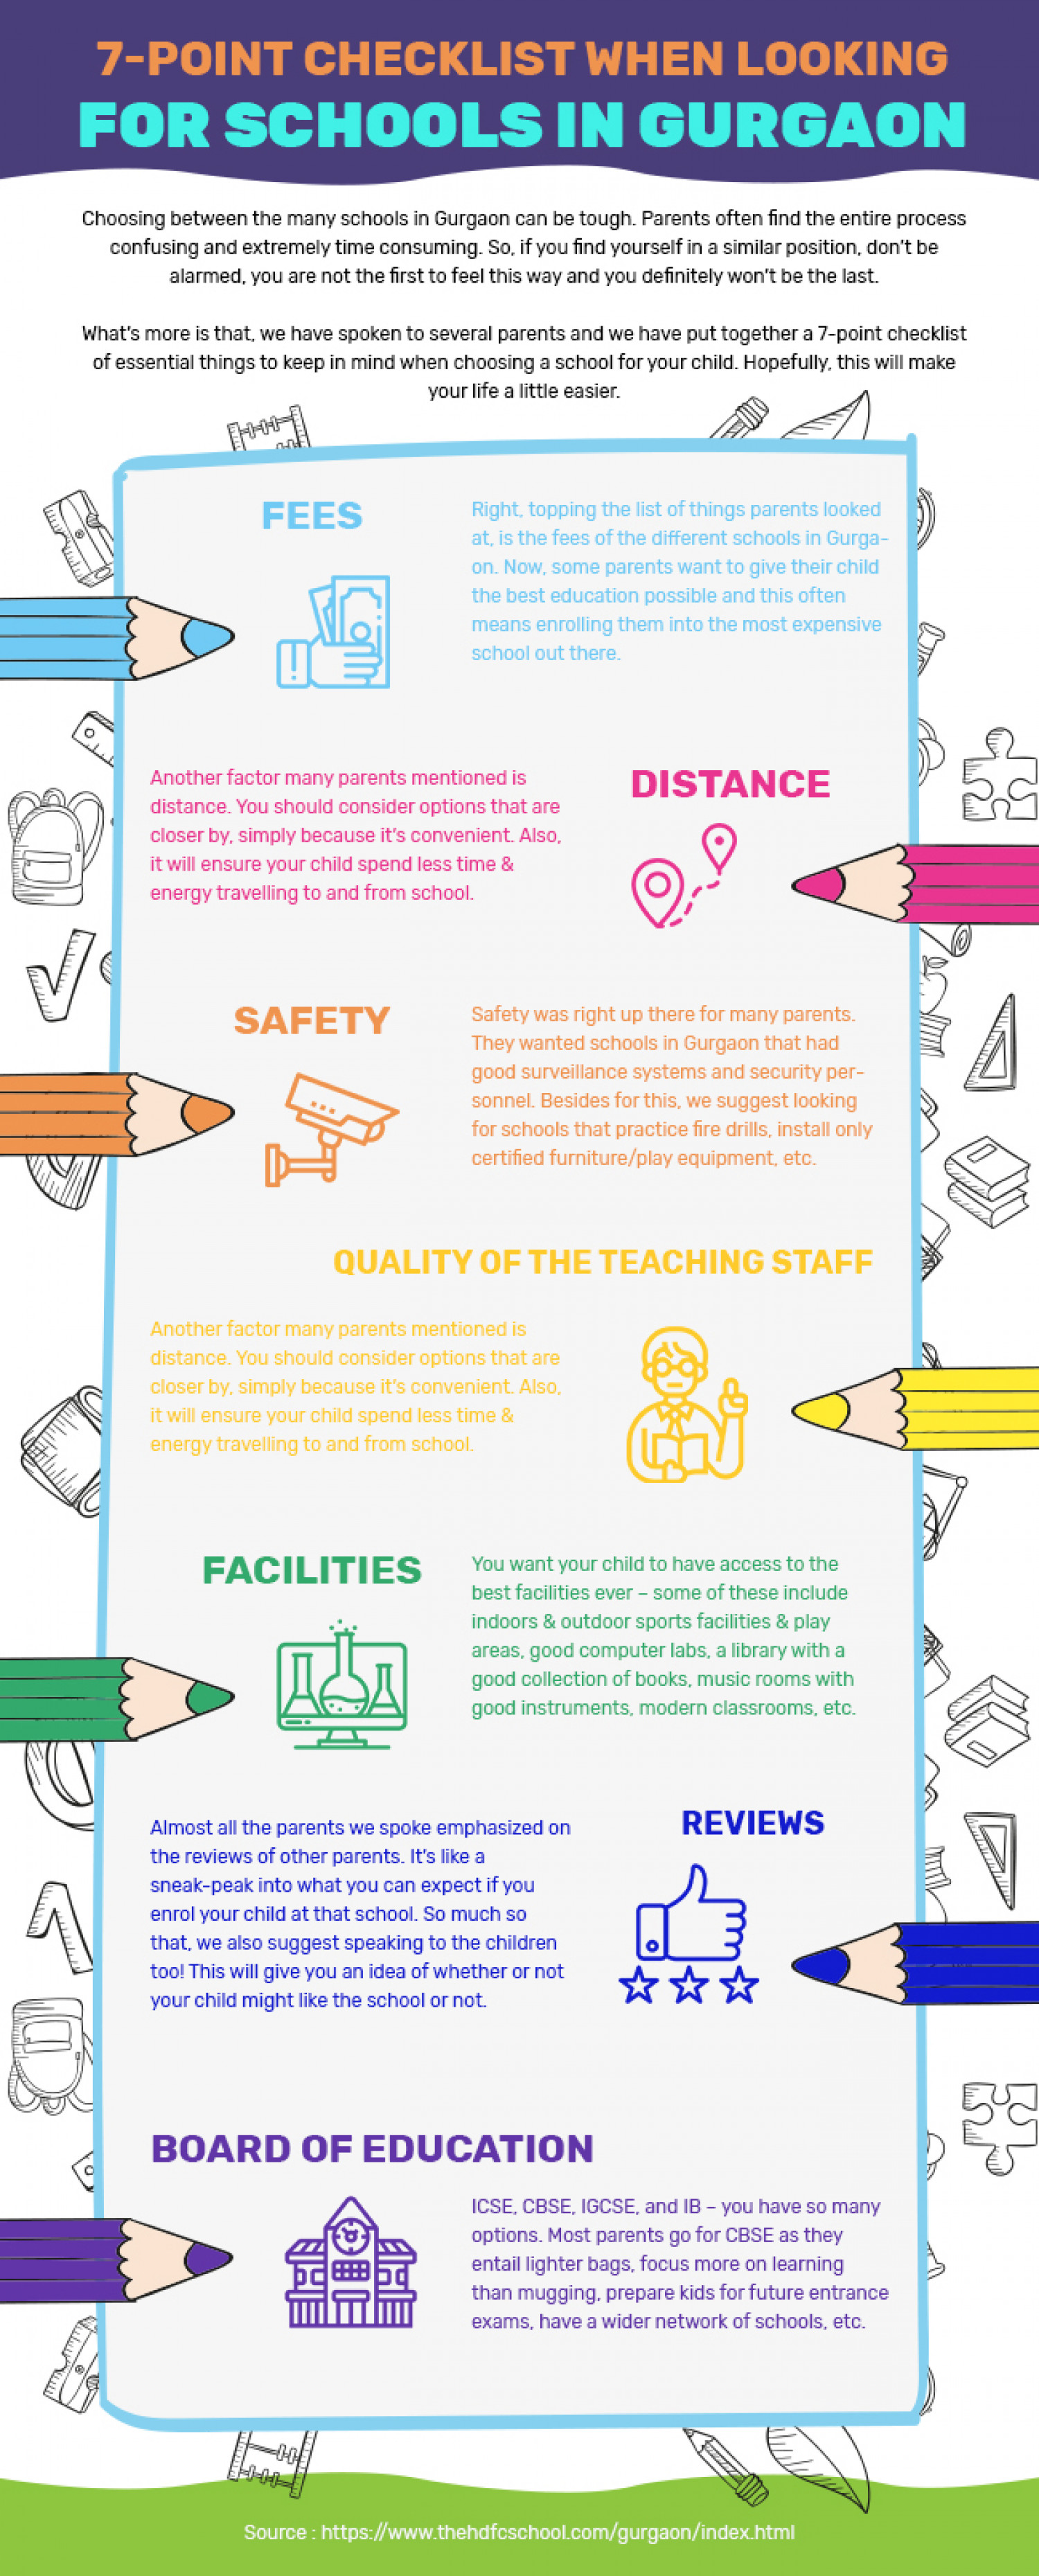 7-point checklist when looking for schools in Gurgaon. Infographic